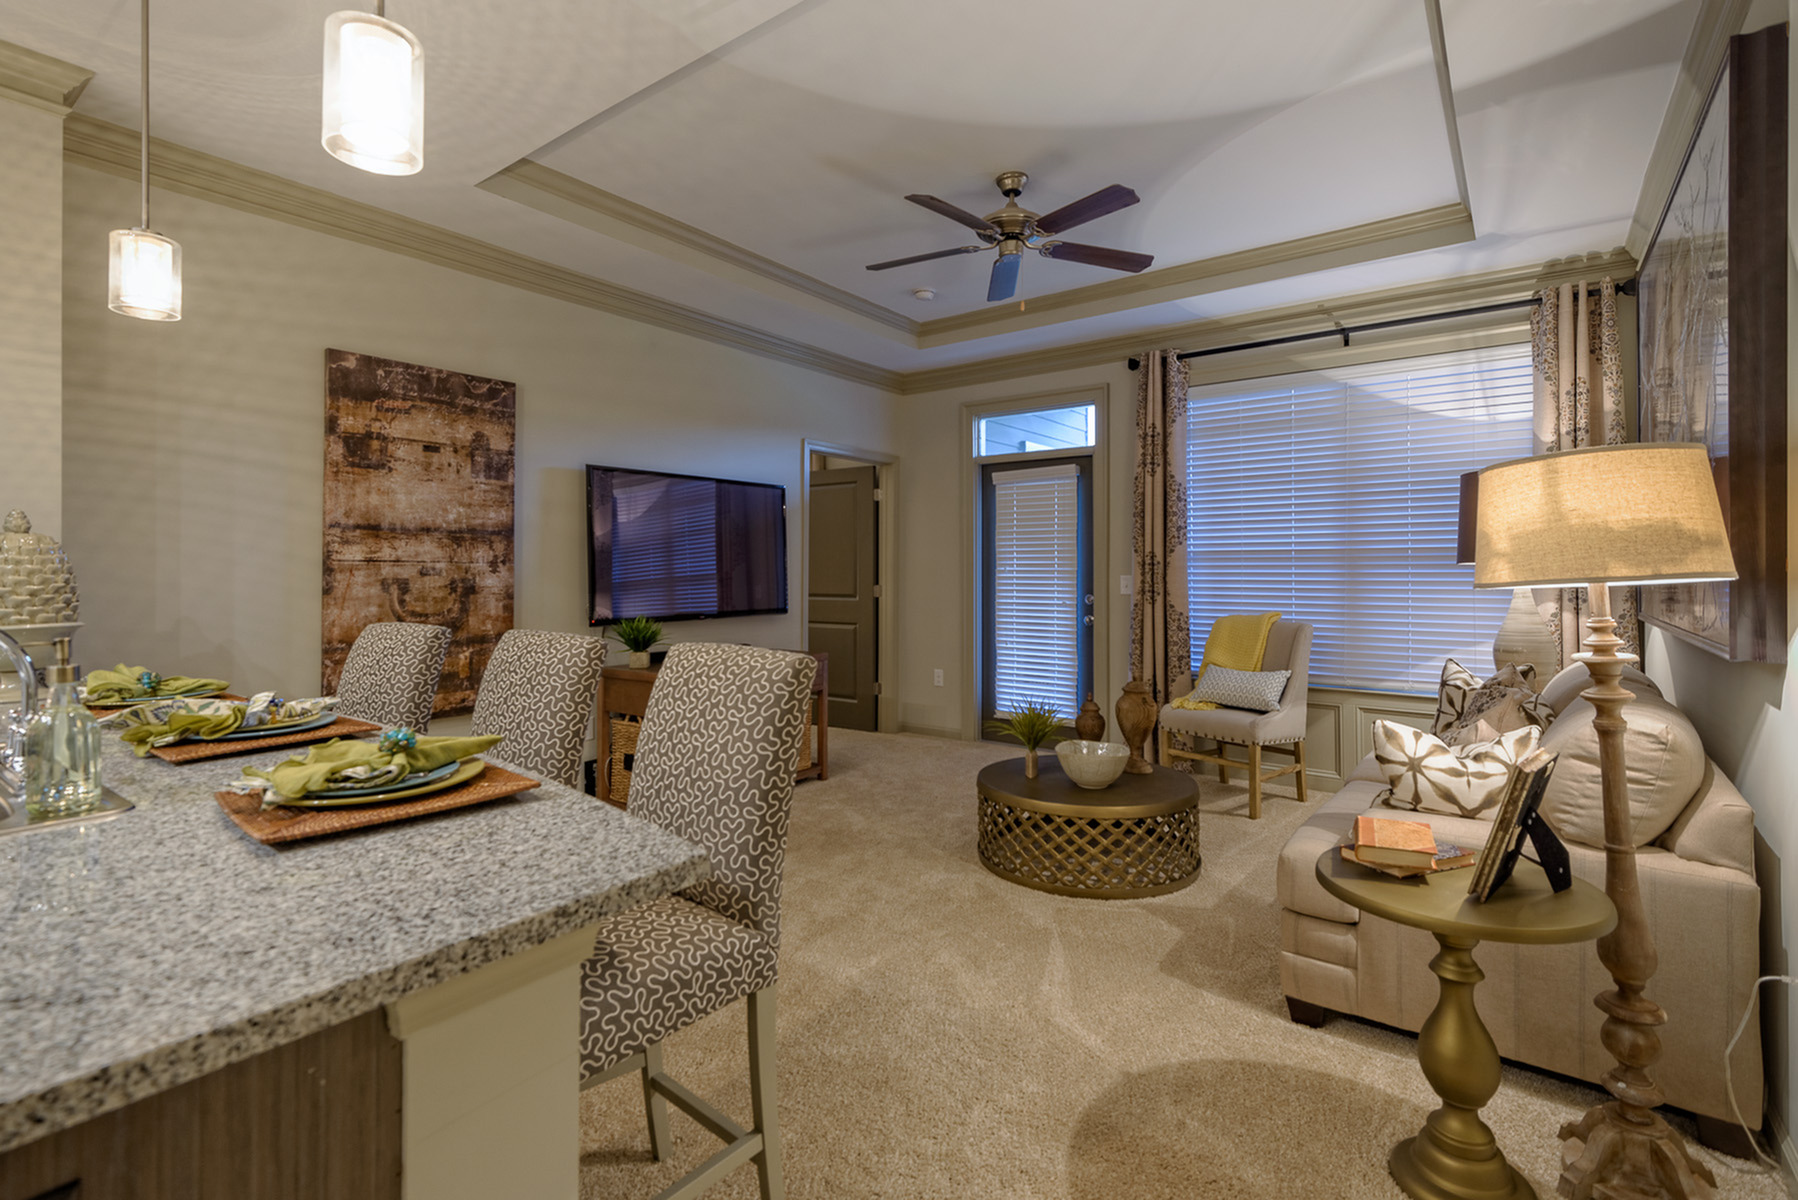 View of Living Room, Showing Bar Stools, Ceiling Fan, and Window View at Heights at Meridian Apartments